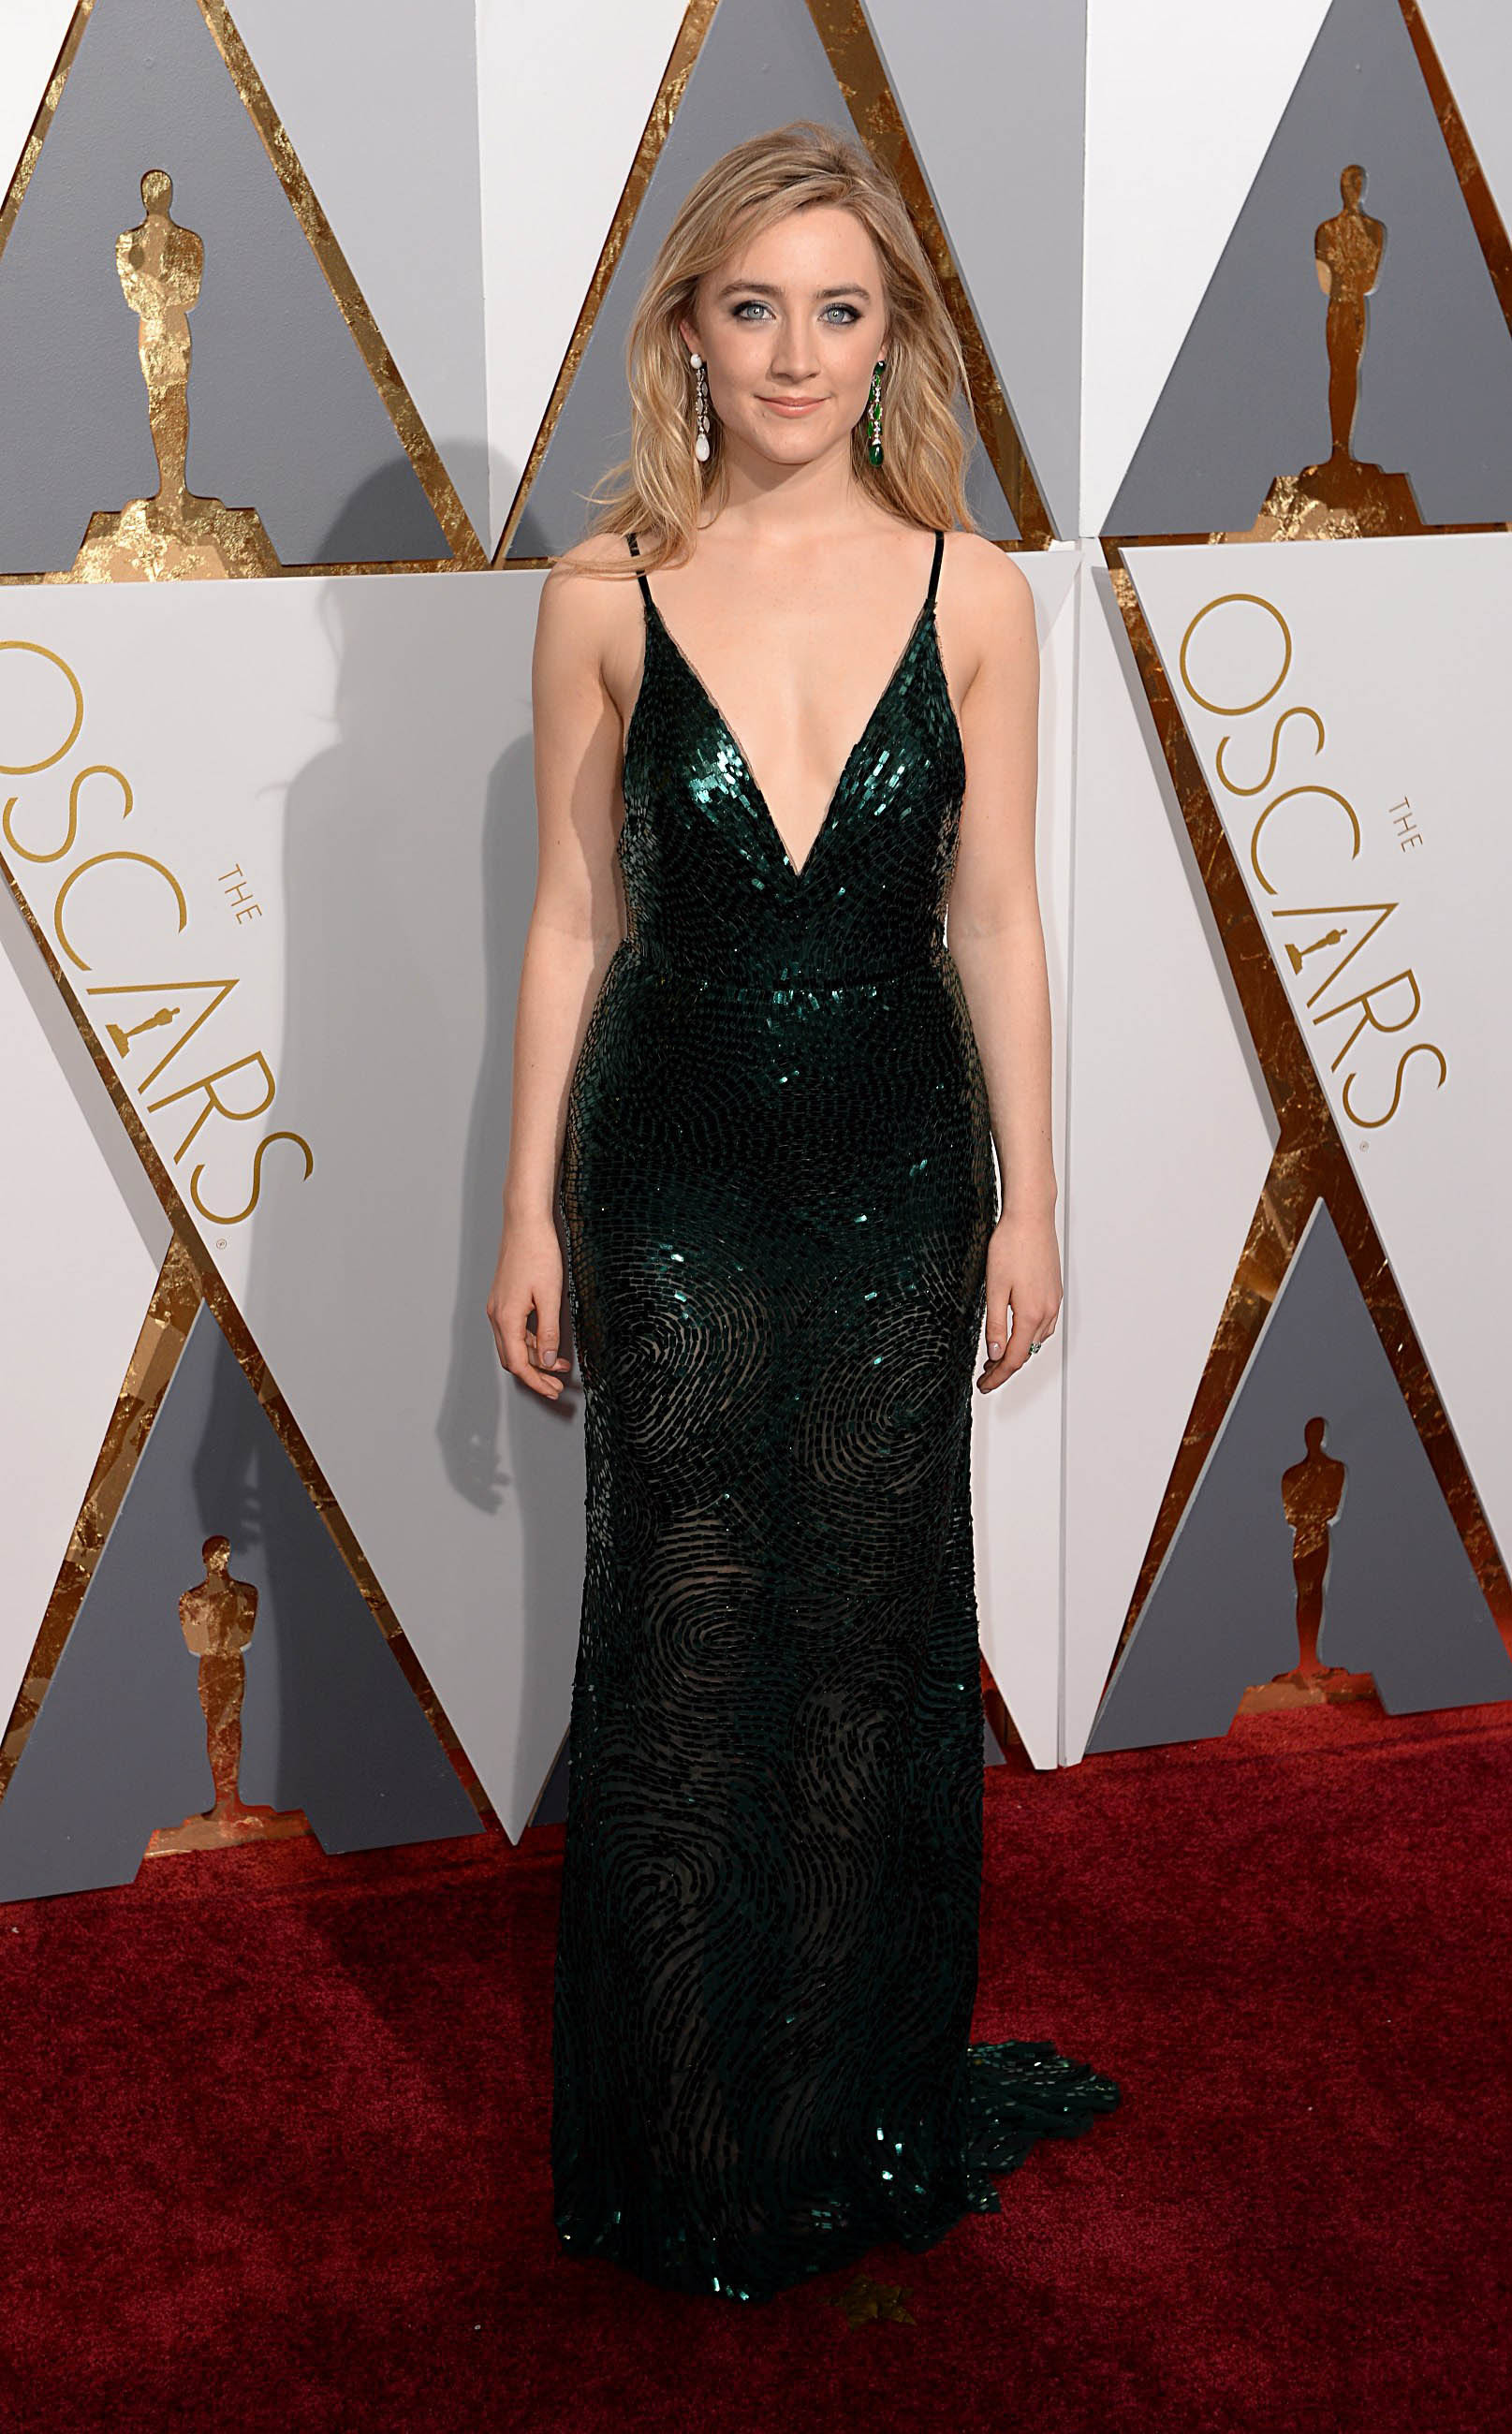 Photo by: PD/starmaxinc.com STAR MAX 2016 ALL RIGHTS RESERVED Telephone/Fax: (212) 995-1196 2/28/16 Saoirse Ronan at the 88th Annual Academy Awards (Oscars) in Hollywood, CA. (Los Angeles, USA)